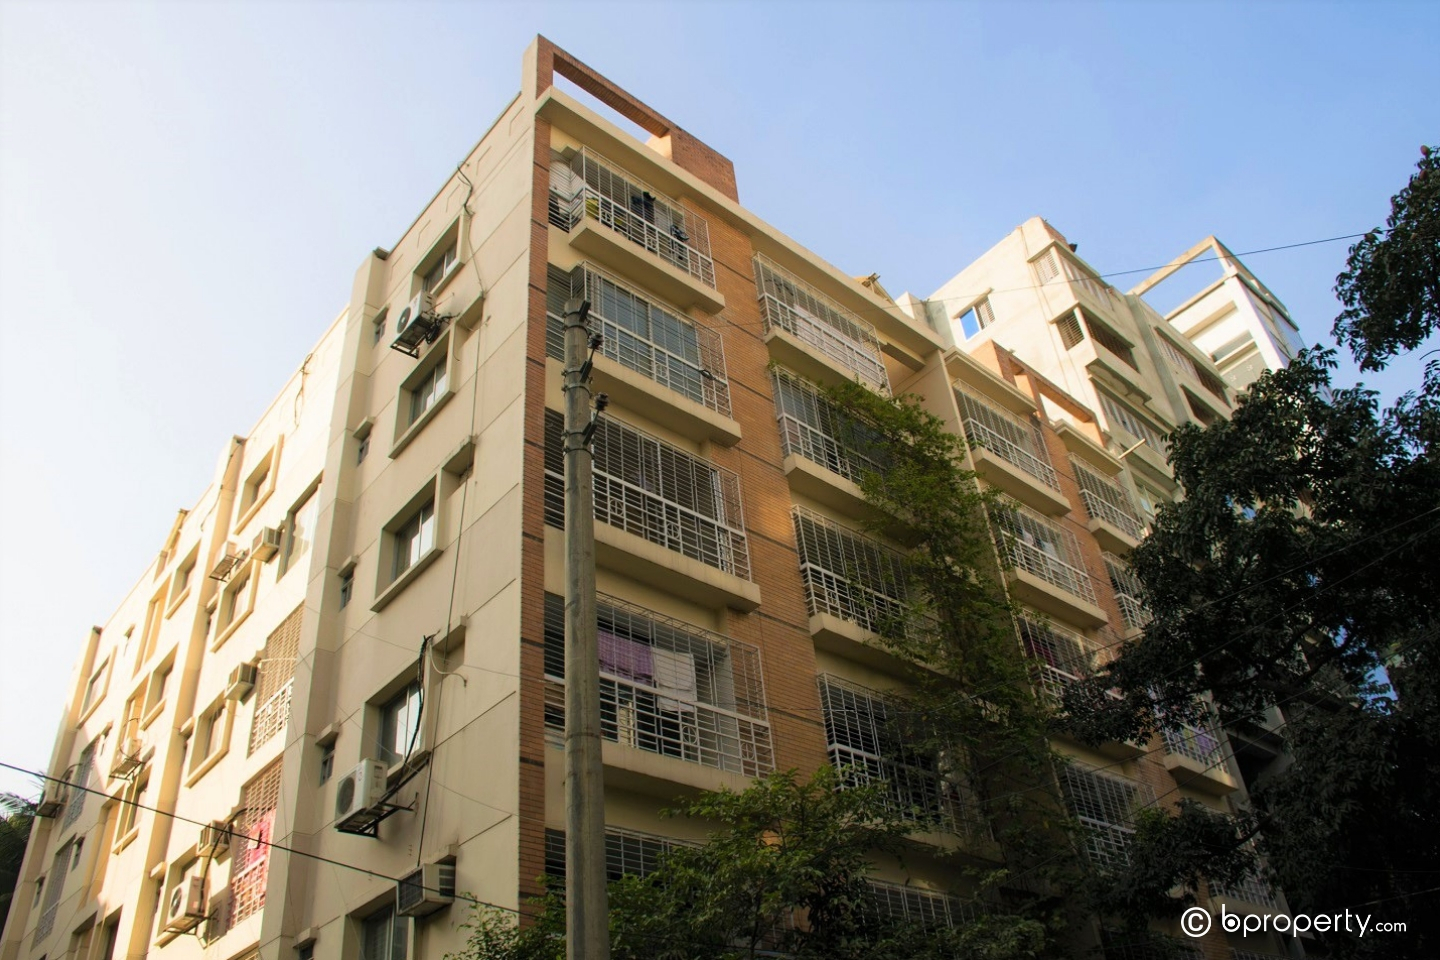 Buy apartments in Banani if you have an elegant taste for residences